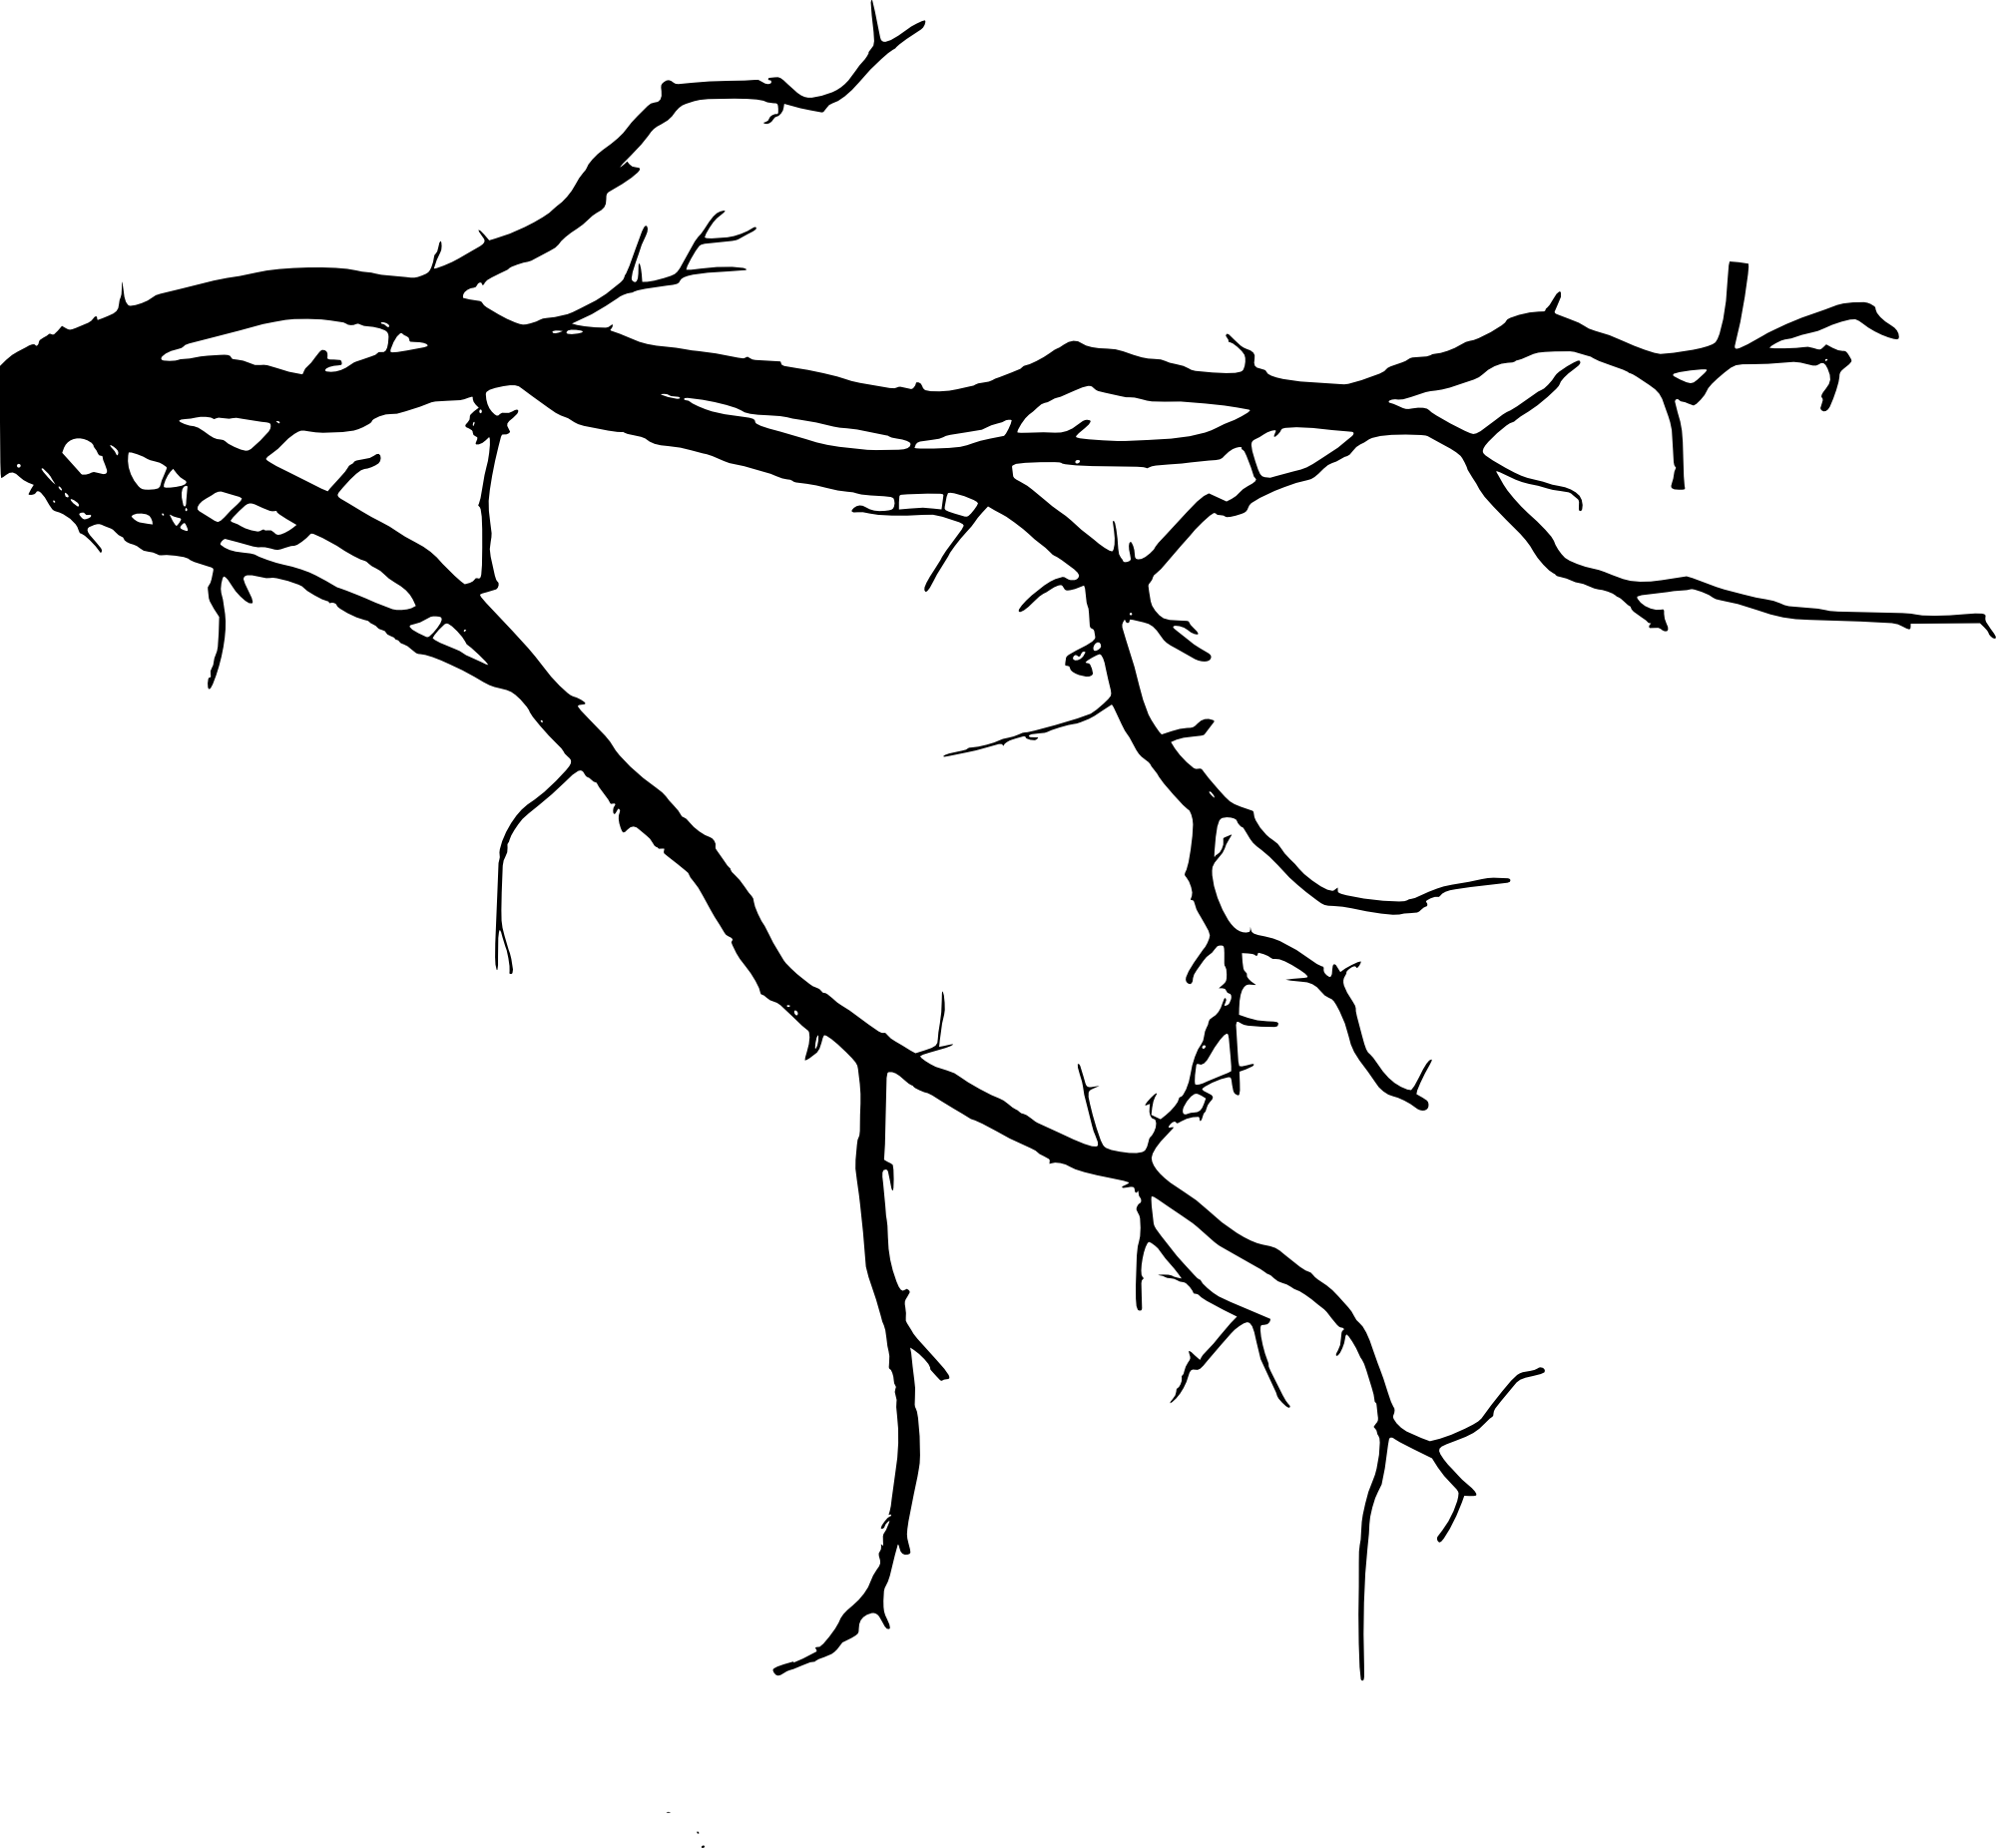 tree branch silhouette 12 tree branch silhouette png transparent vol 3 branch tree silhouette